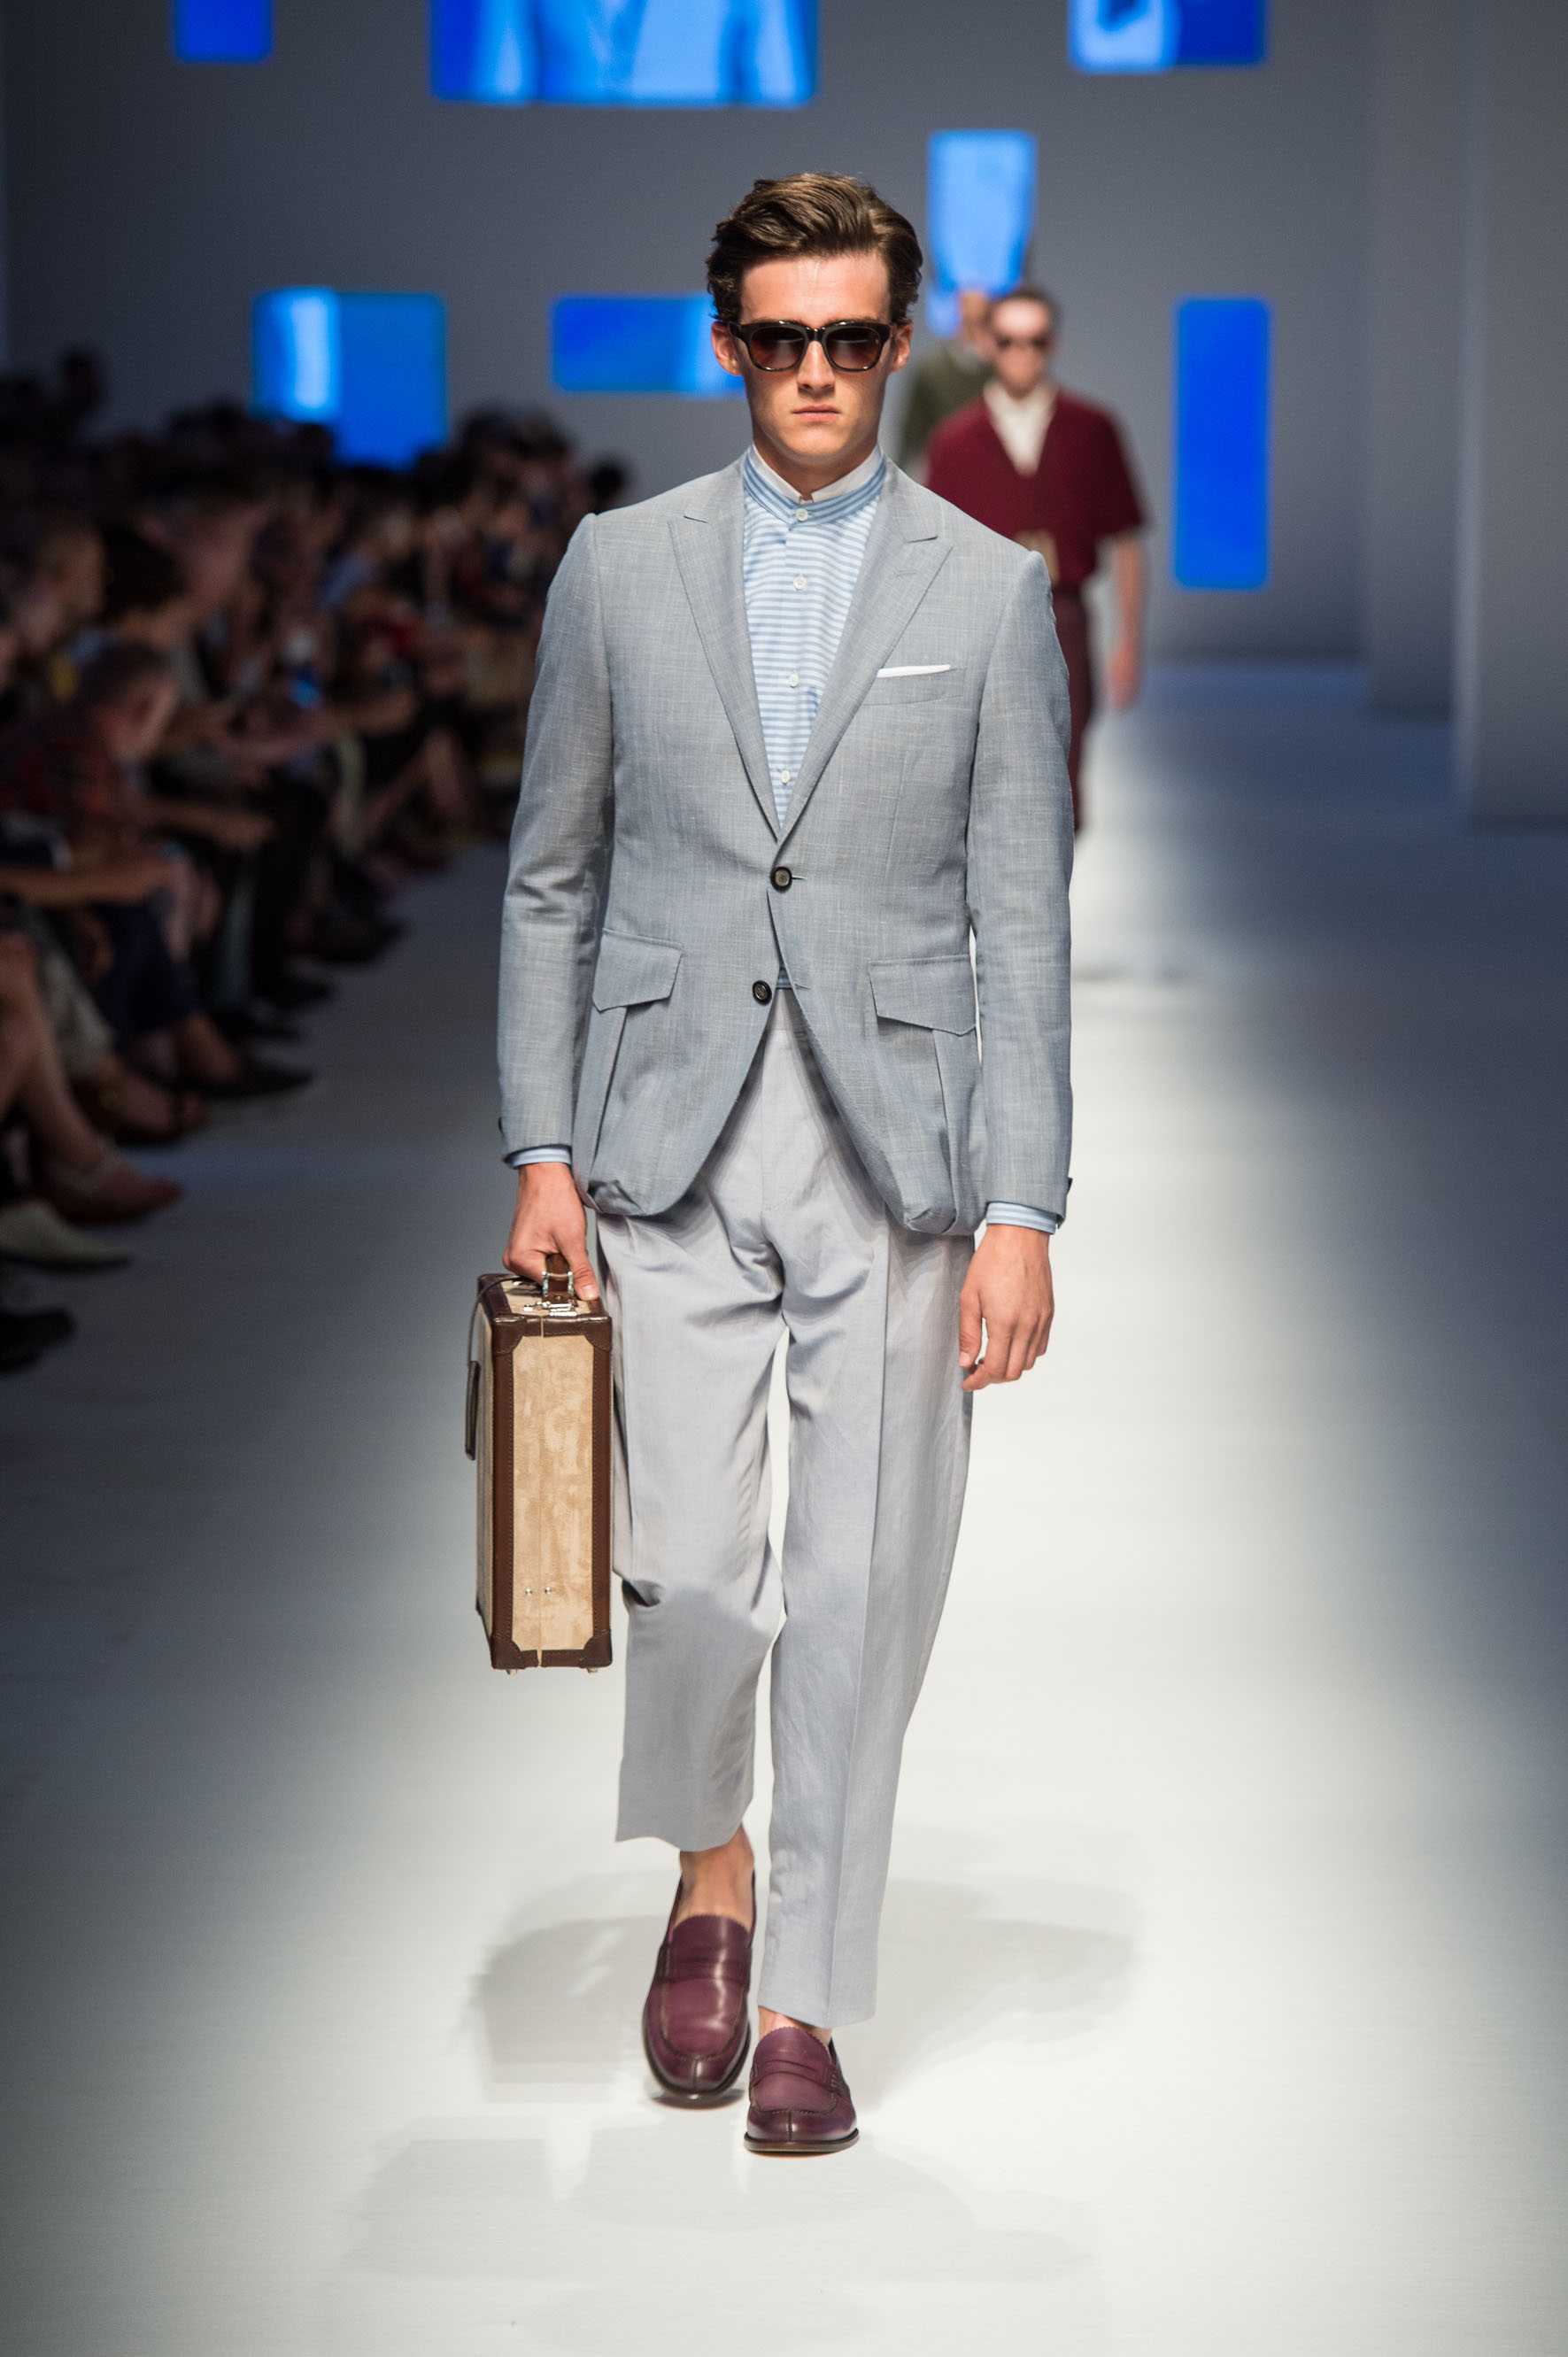 Two-button jacket with flap bellows pockets and martingale in the back, calfskin loafers, briefcase with contrast stripe